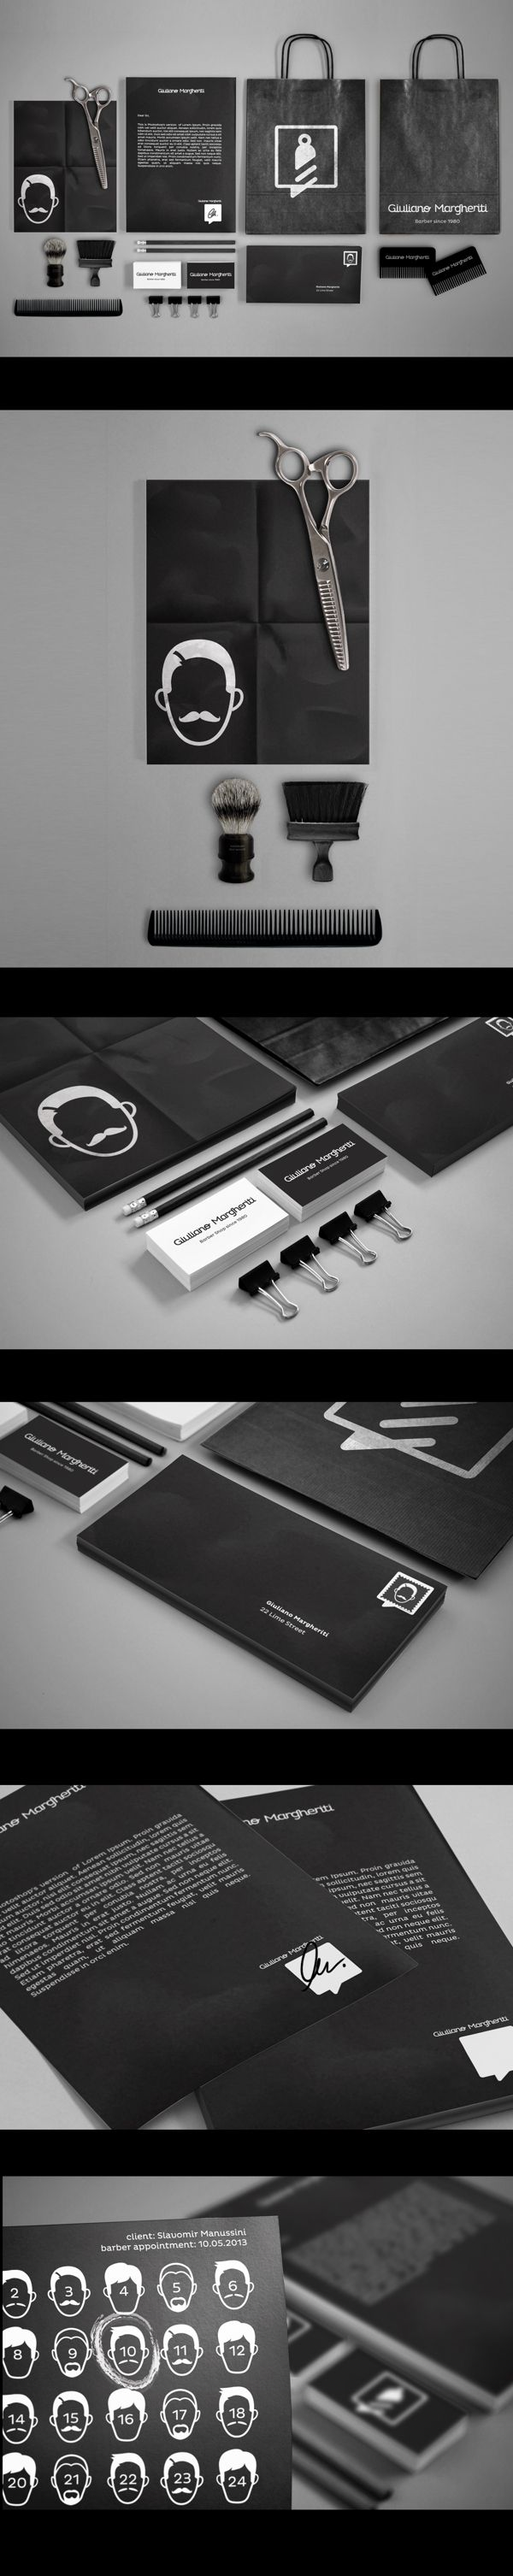 Giuliano Margheriti by Cosa Nostra , via Behance | #stationary #corporate #design #corporatedesign #identity #branding #marketing < repinned by www.BlickeDeeler.de | Take a look at www.LogoGestaltung-Hamburg.de